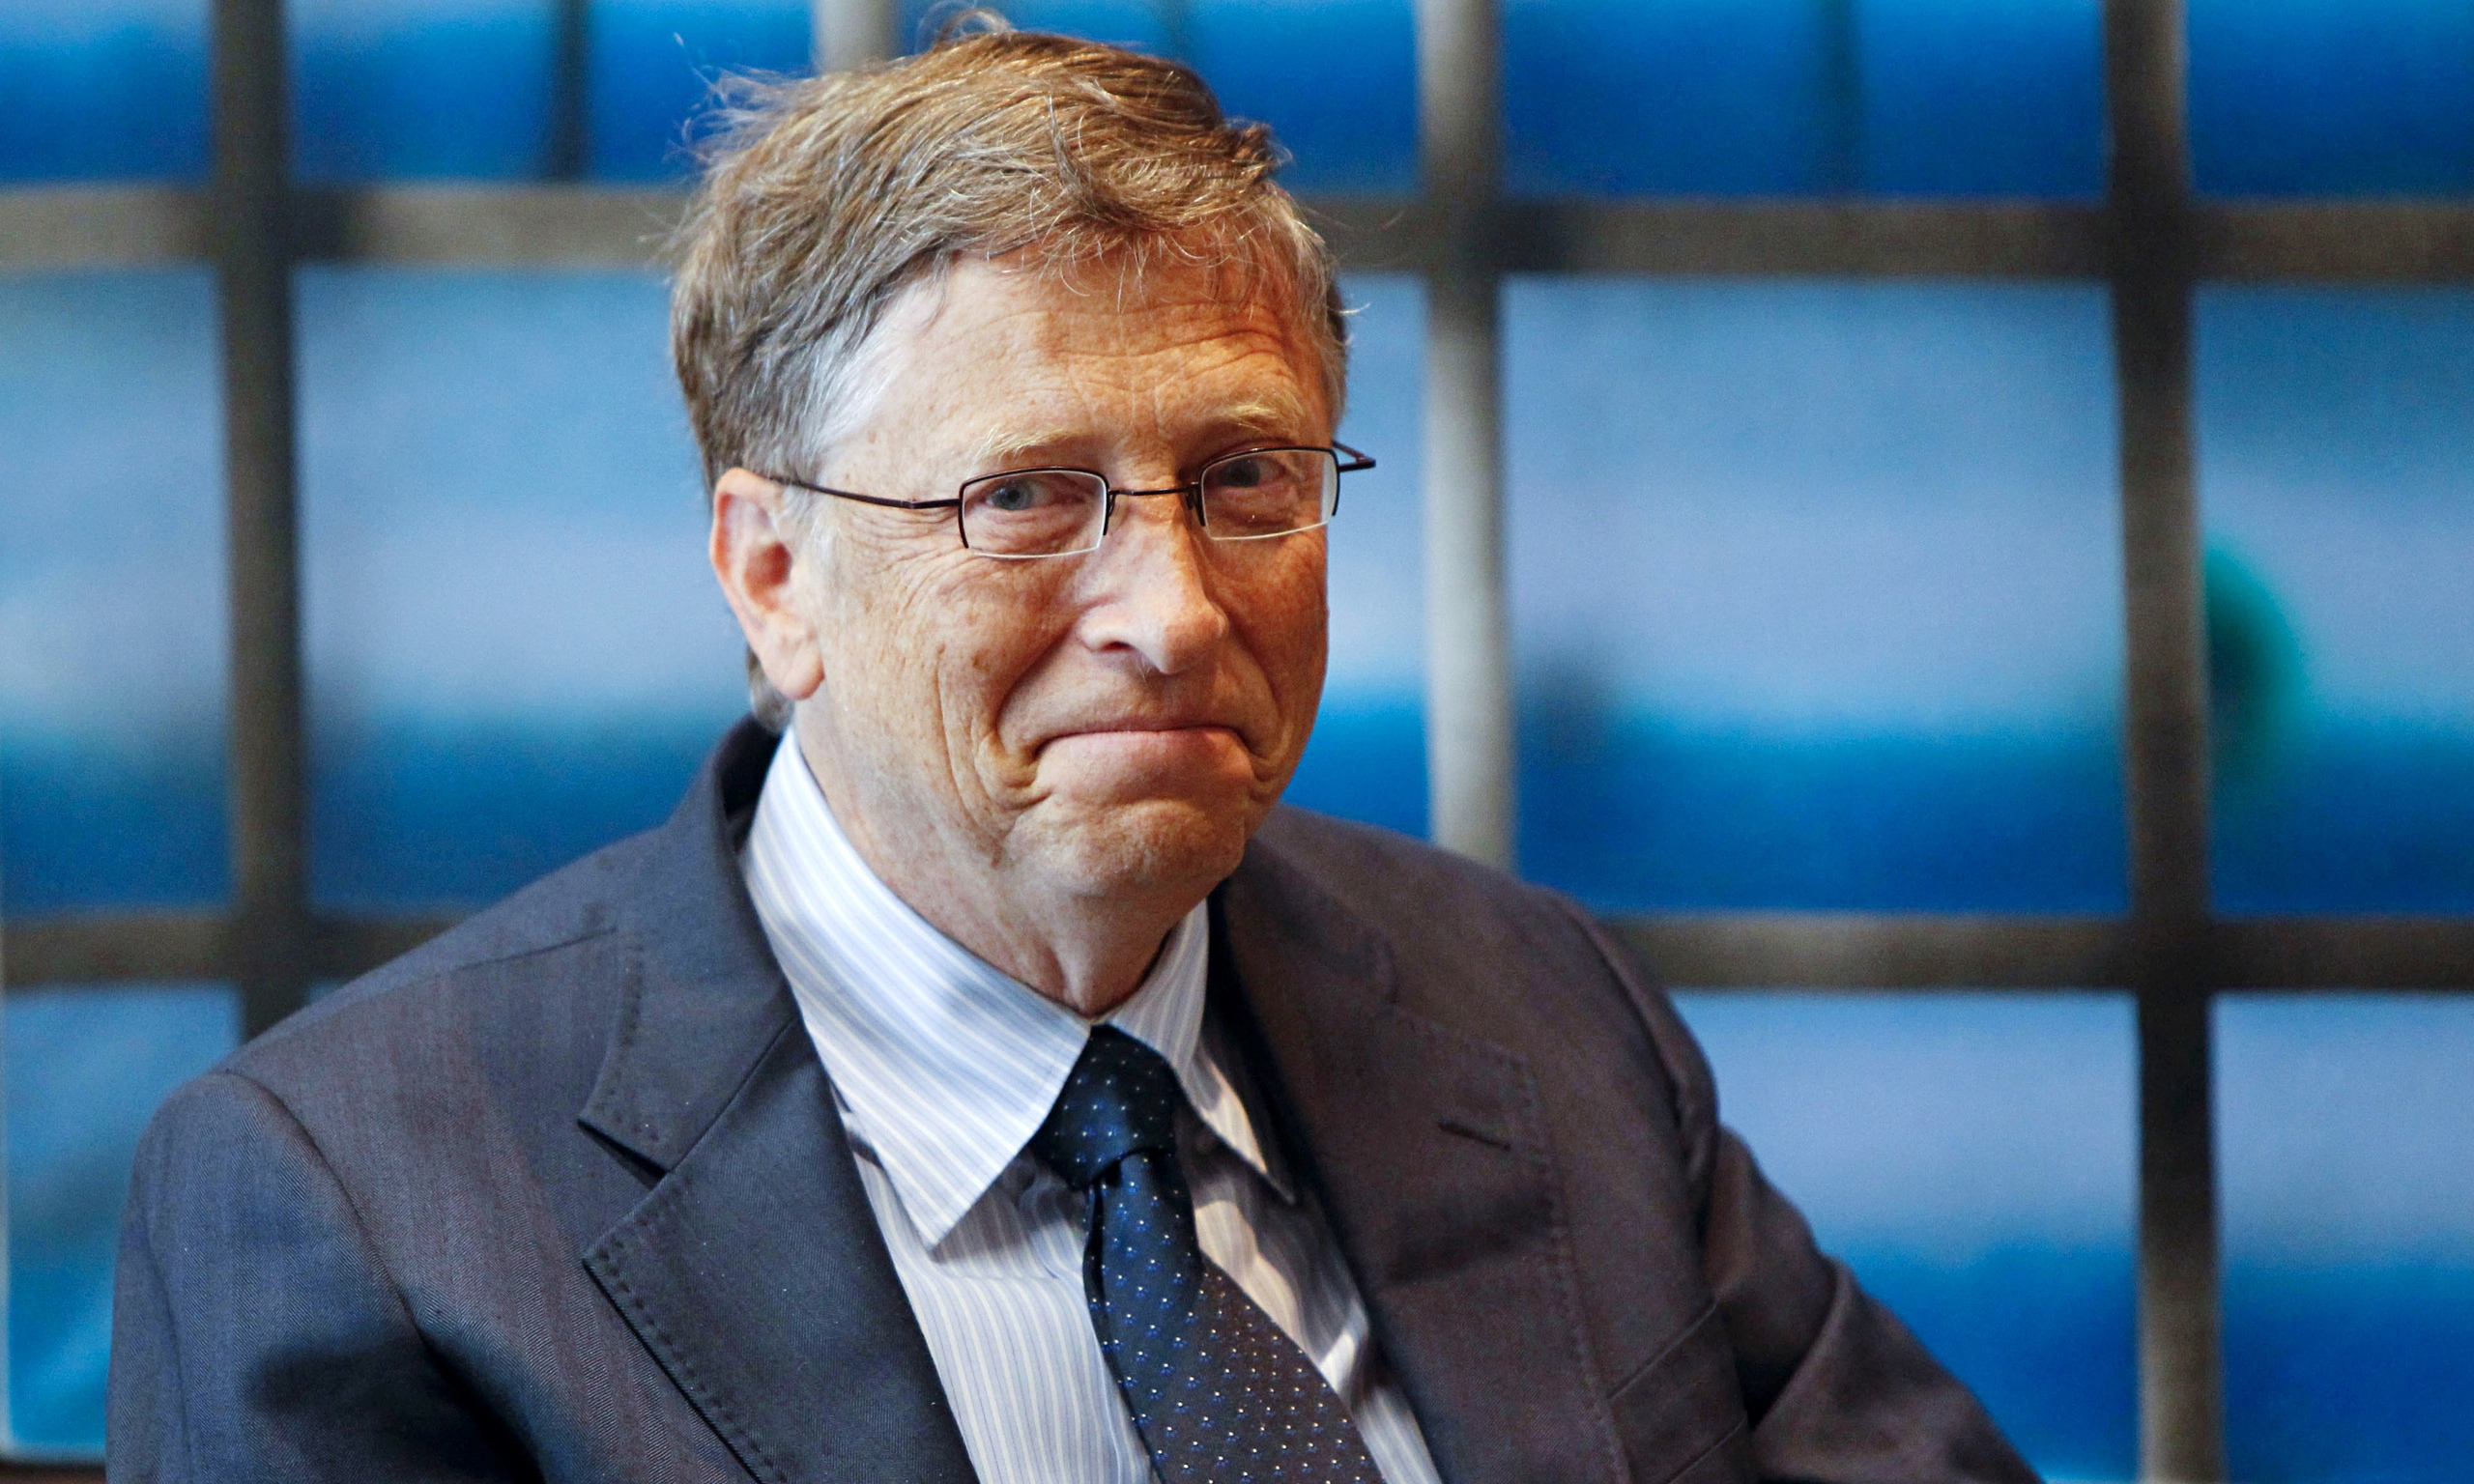 Bill Gates Wallpapers Images Photos Pictures Backgrounds